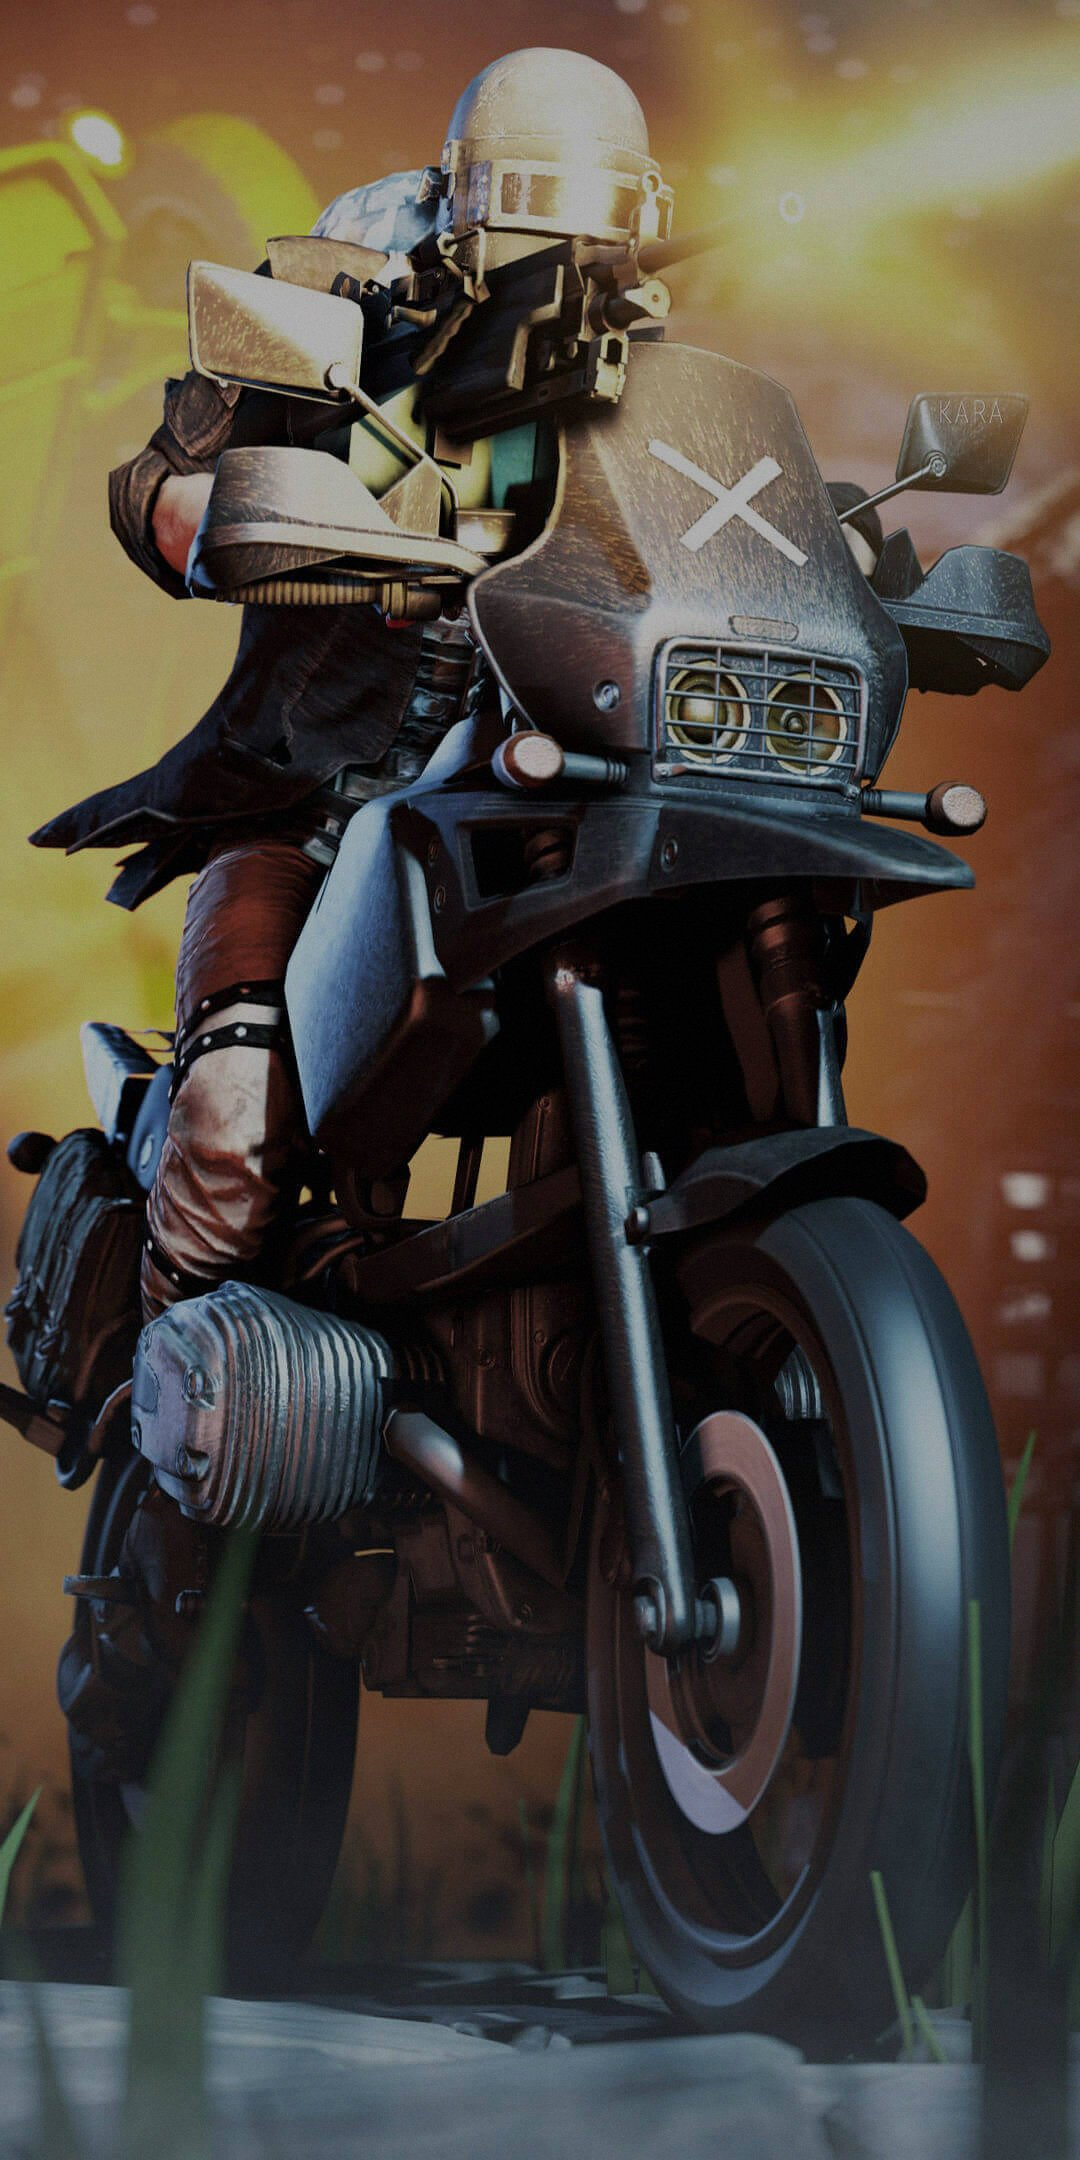 40 Pubg Wallpapers For Phones Fhd 18 9 Wallpapers Droidviews